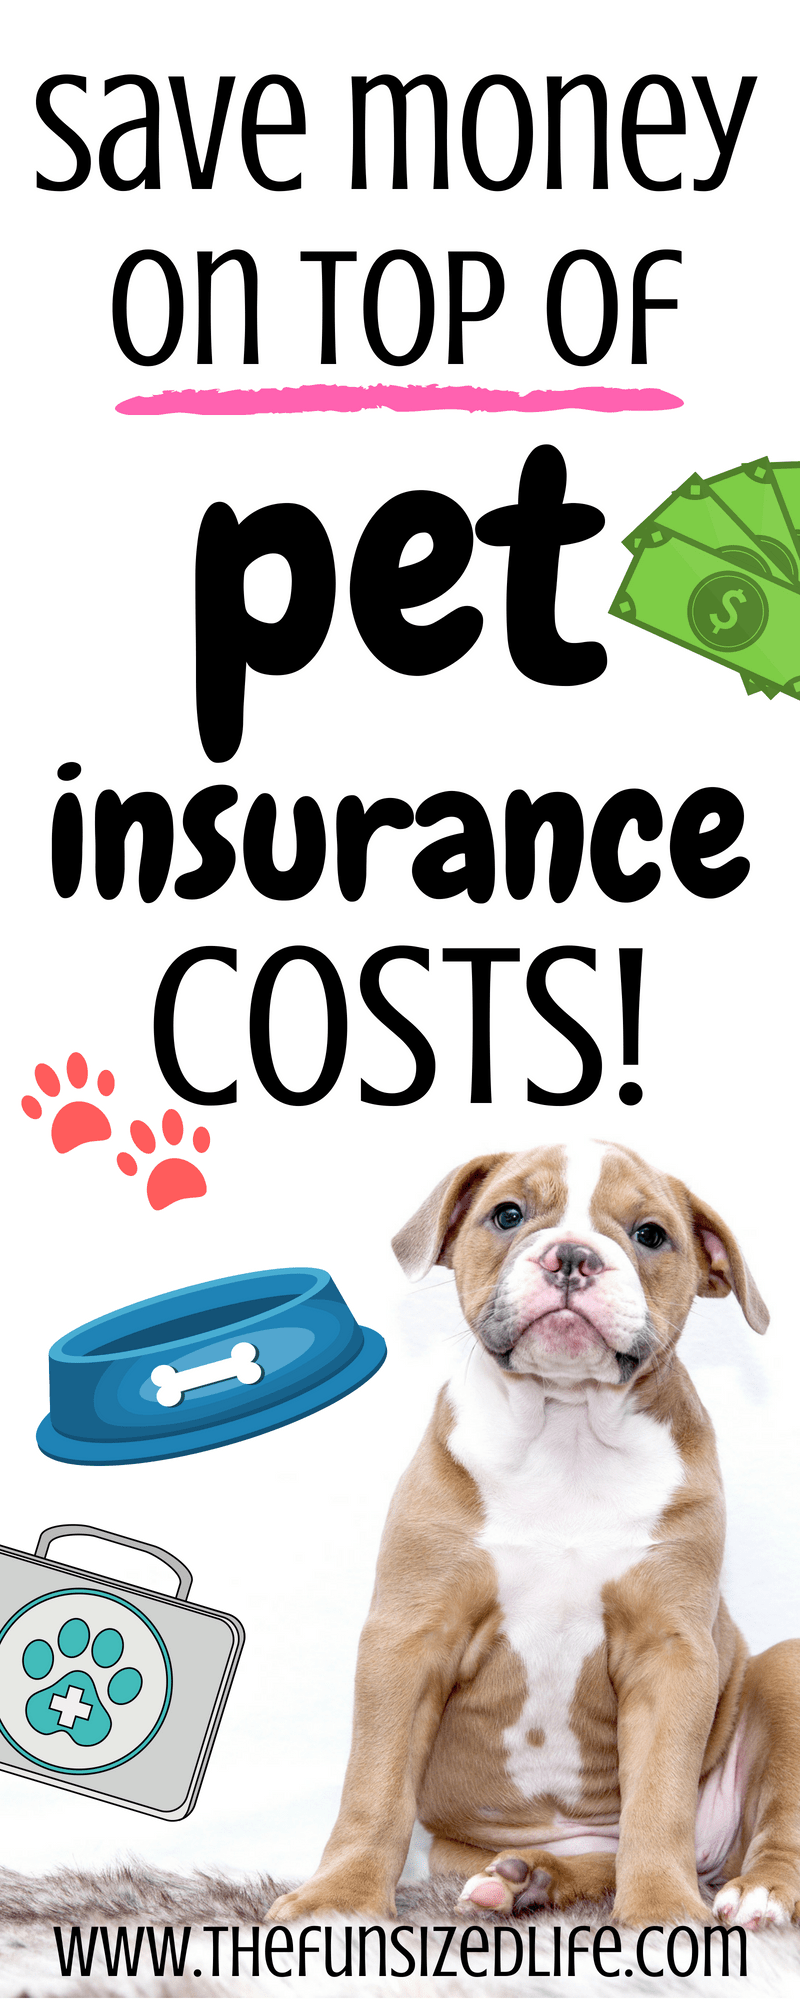 How To Get Additional Financial Assistance On Top Of Your Pet Insurance Paying For Pet Insurance Can Save You Tons On Vet Visits But Did You Know You Can Get E